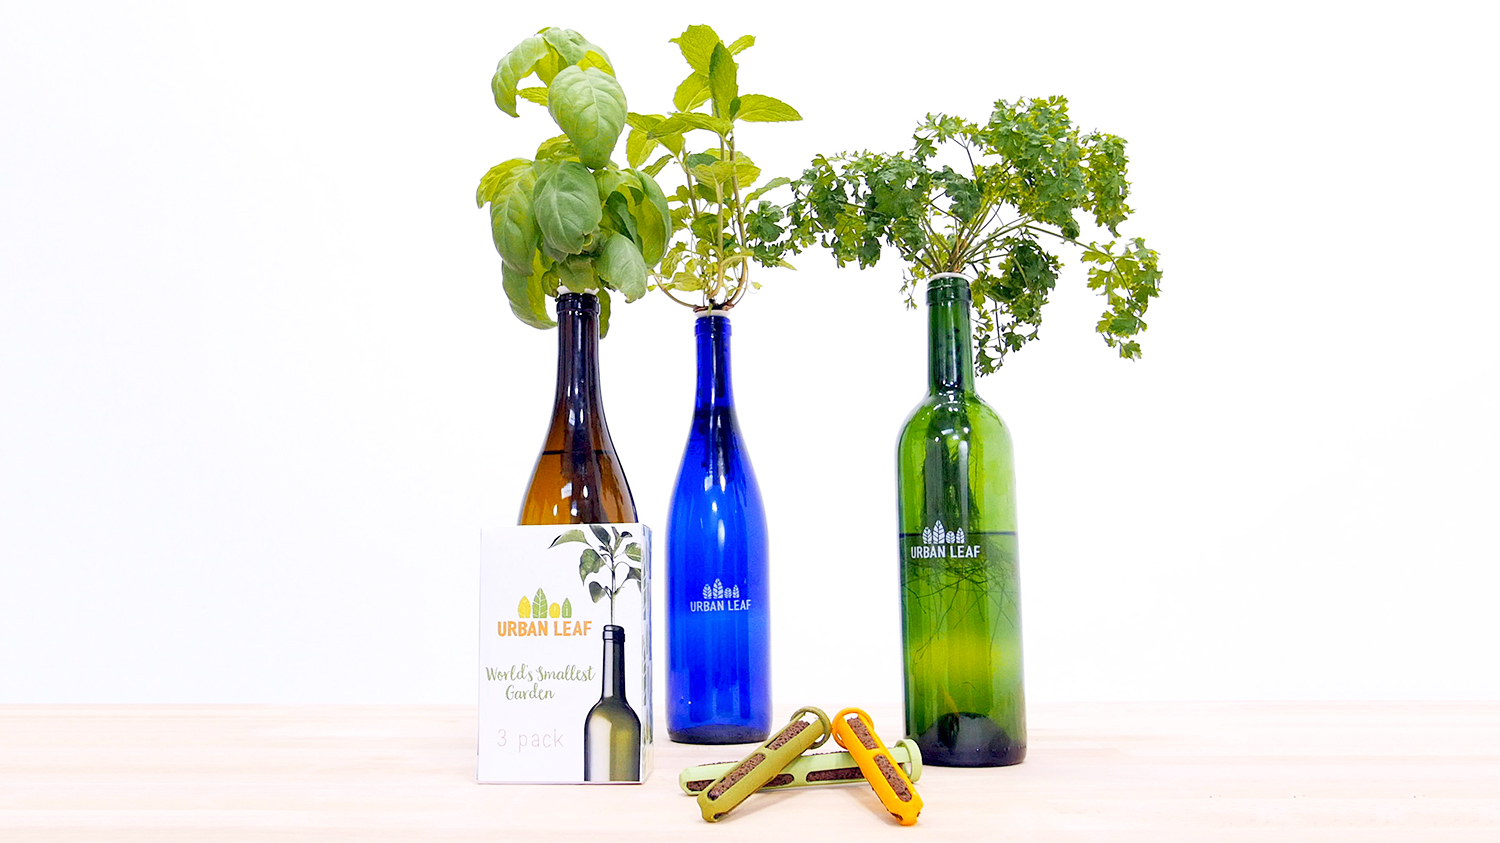 gardens in wine bottles